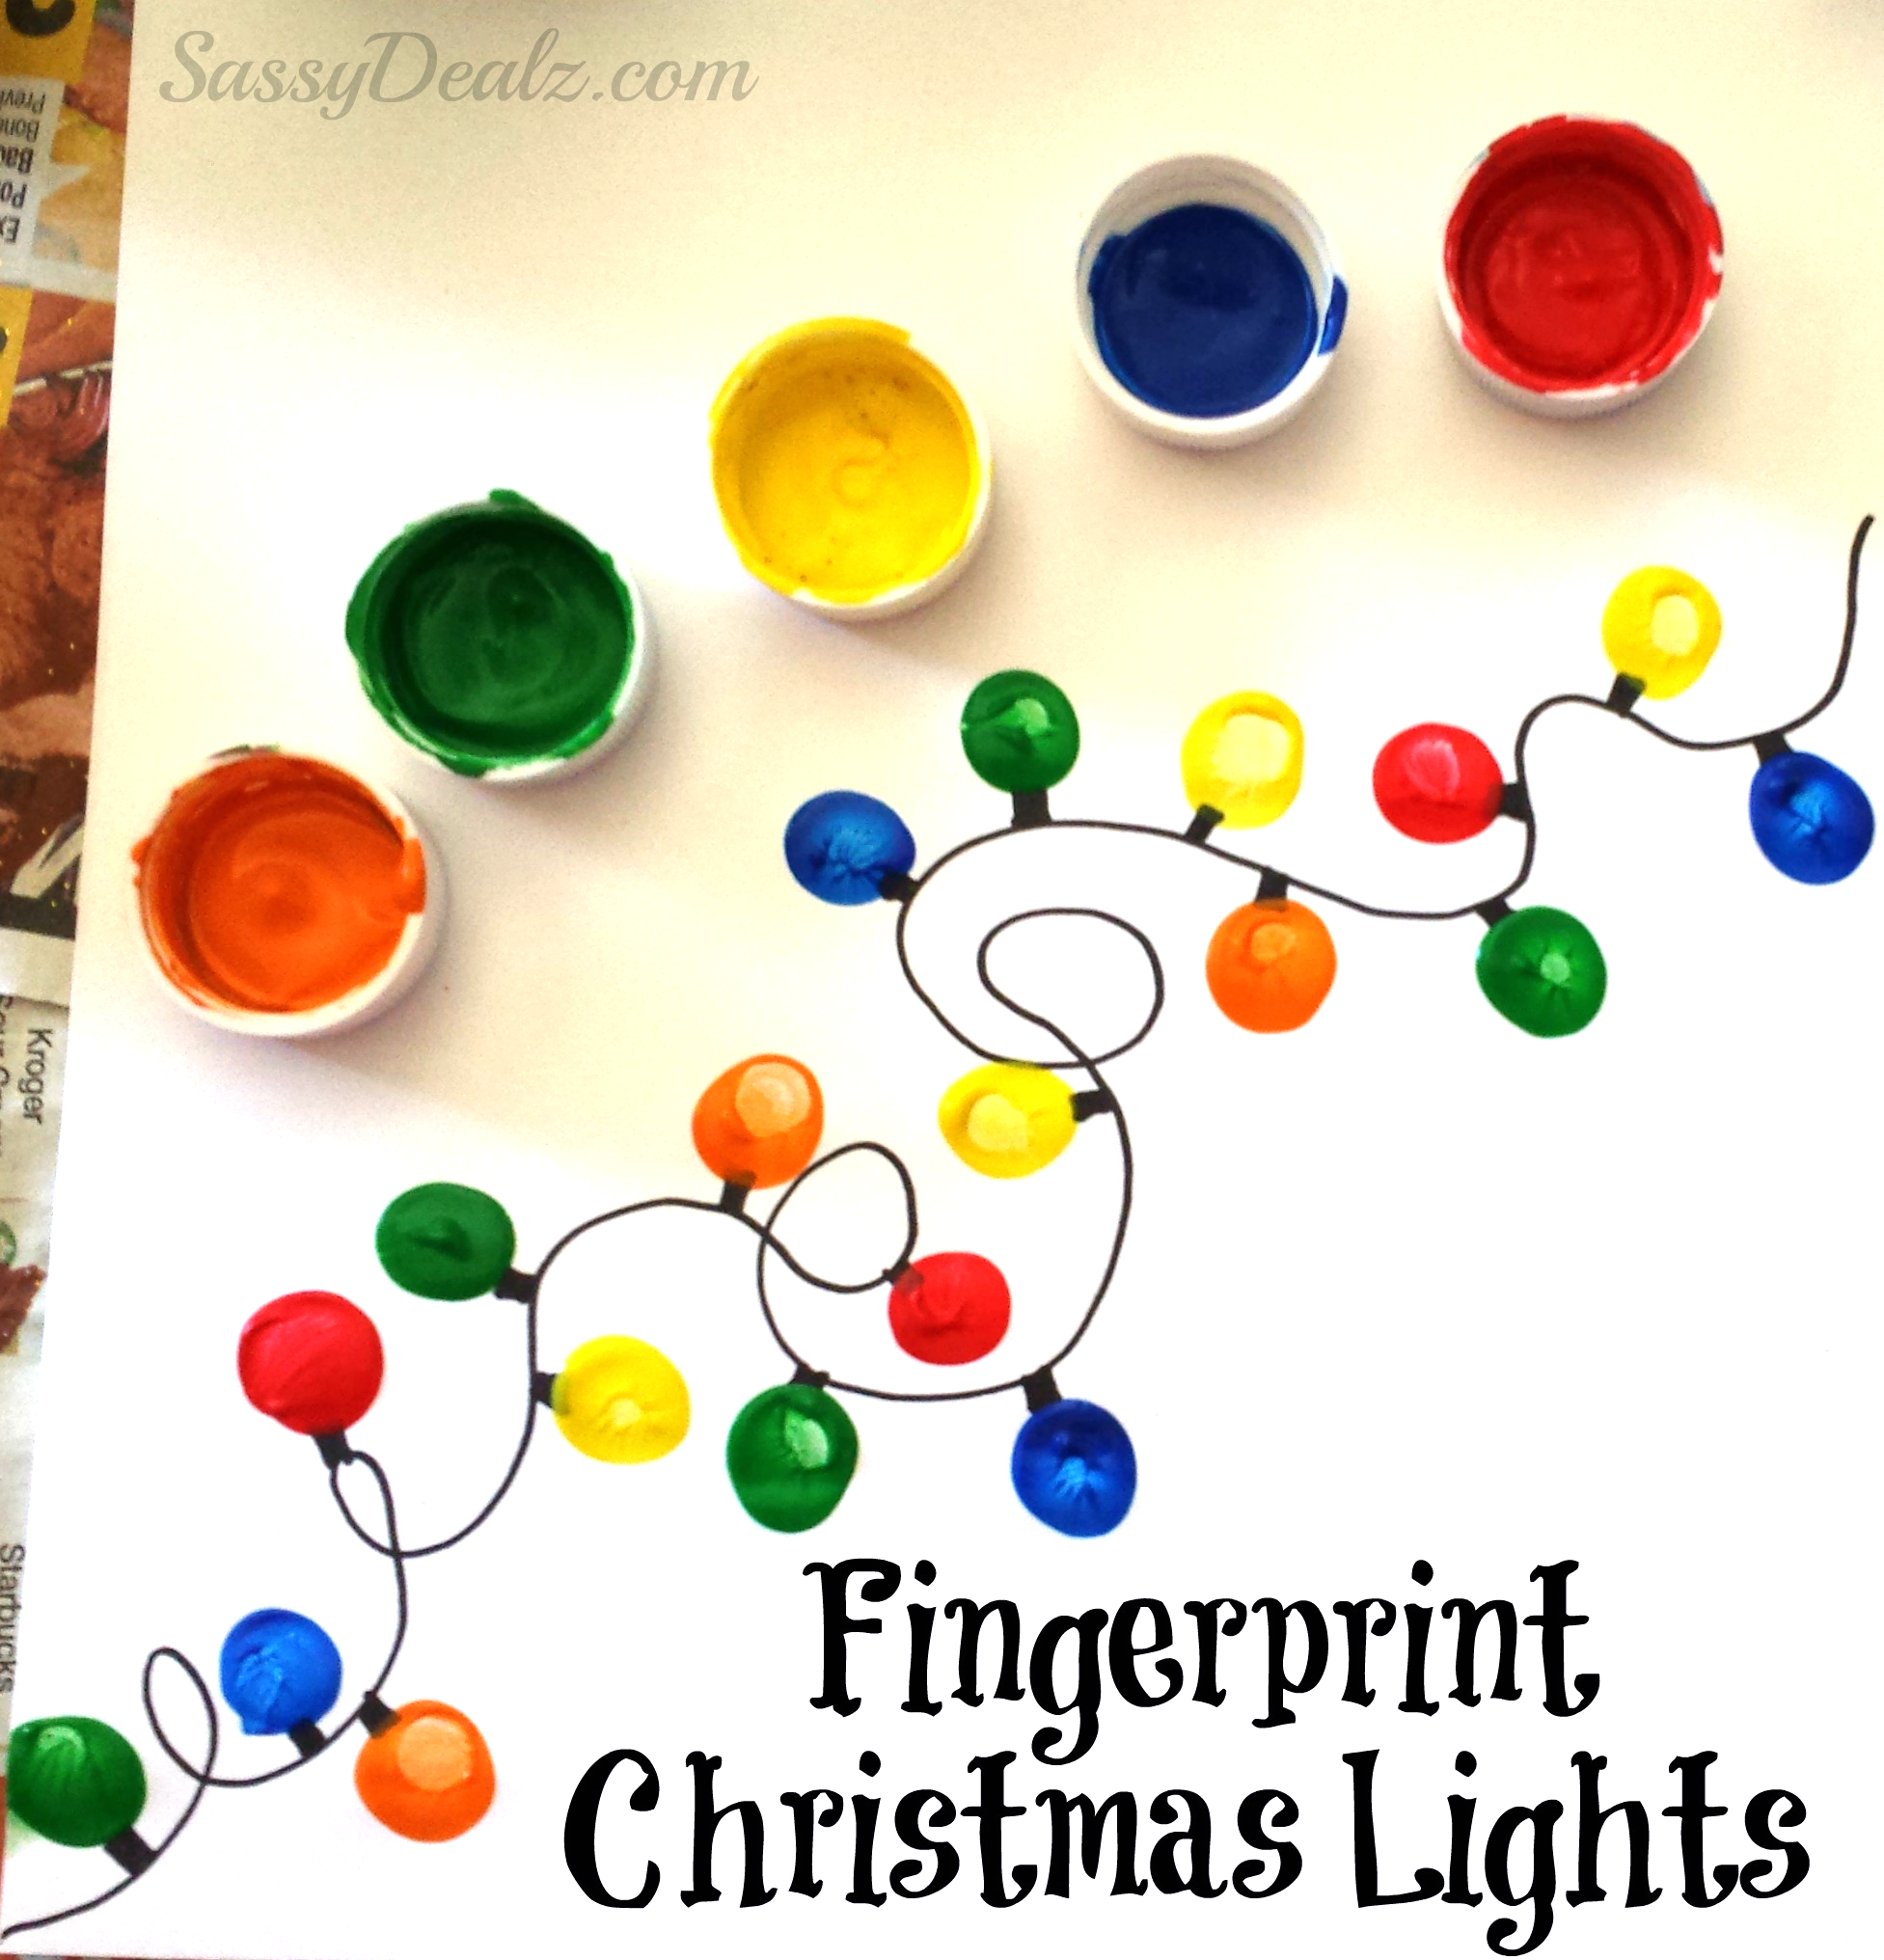 Paper Craft Christmas Card Ideas Part - 42: Fingerprint Christmas Light Craft For Kids (DIY Christmas Card Idea!) |  CraftyMorning.